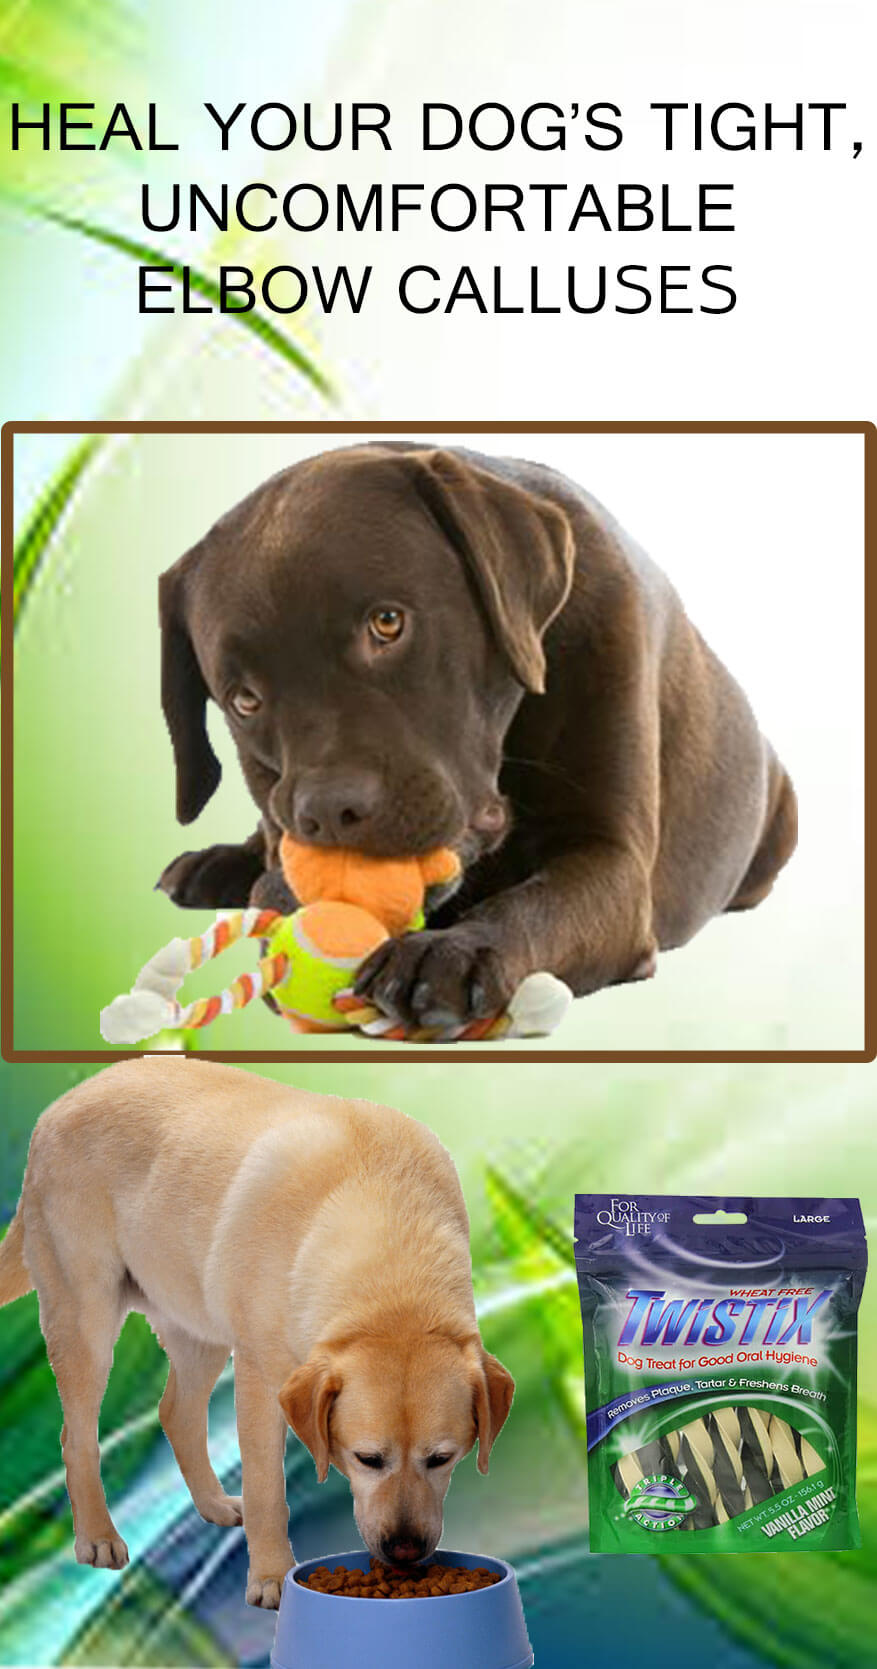 How to Heal Your Dog Tight, Uncomfortable Elbow Calluses